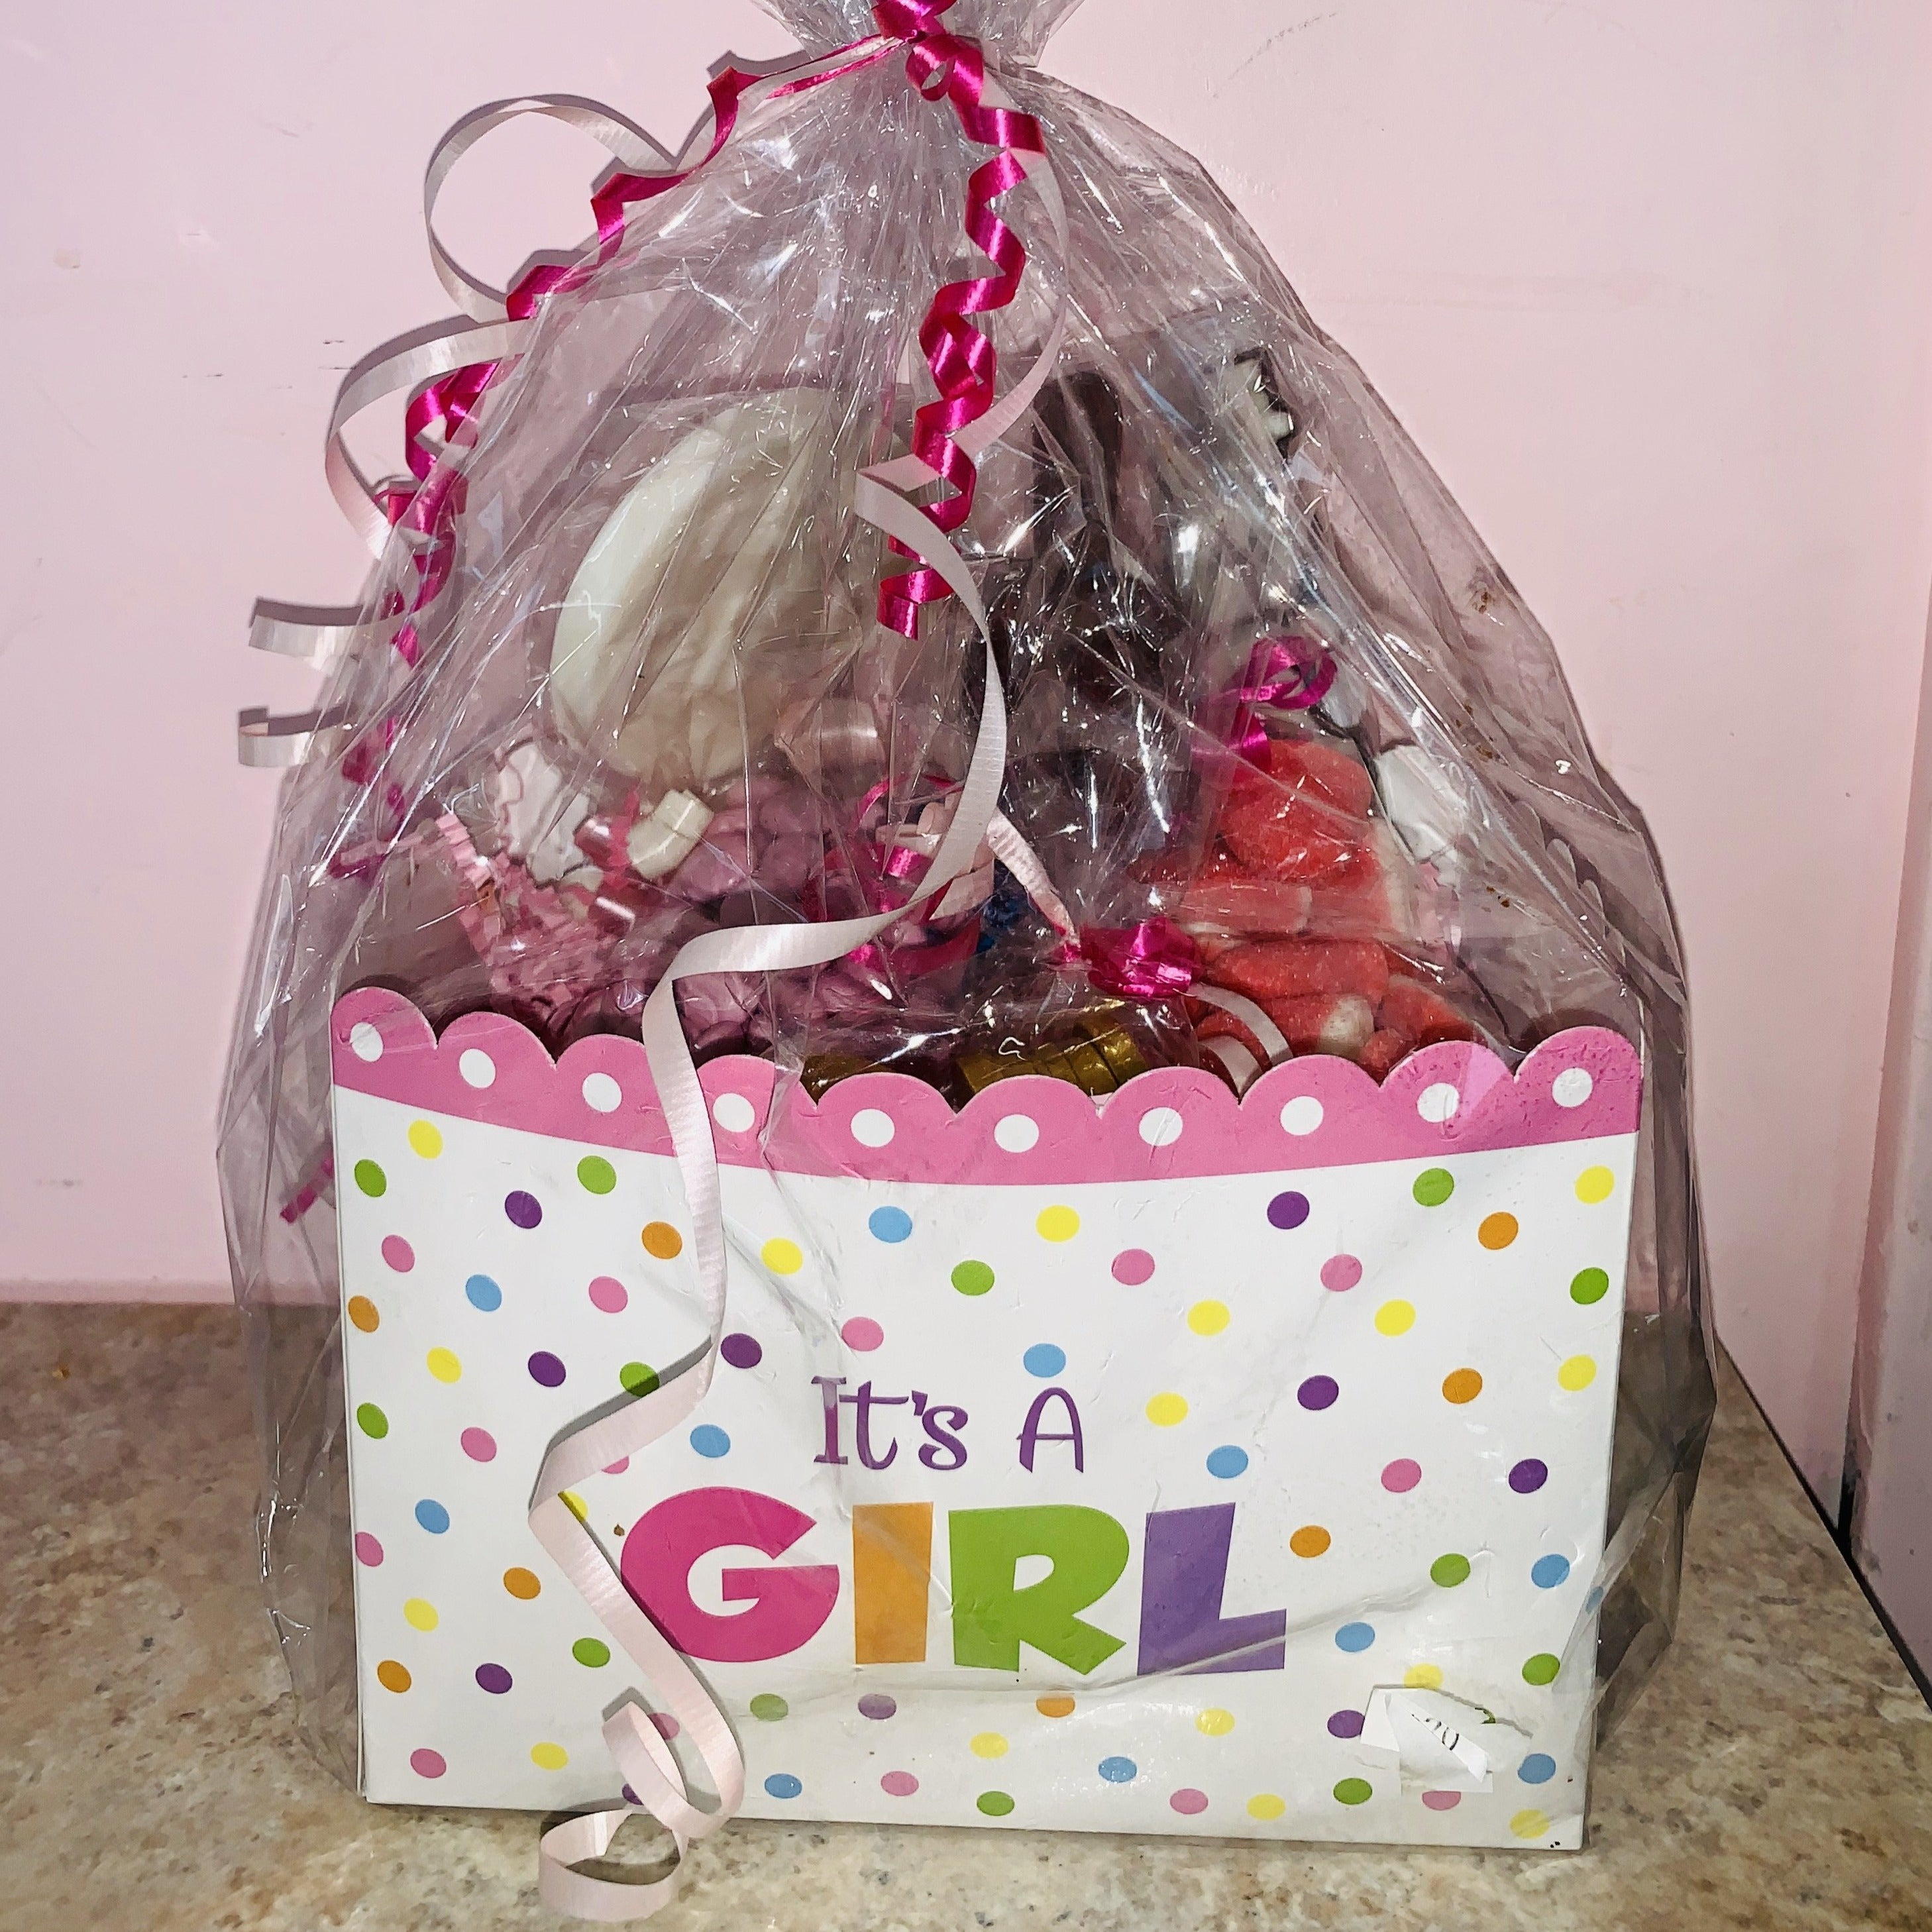 It's a Girl Candy Basket